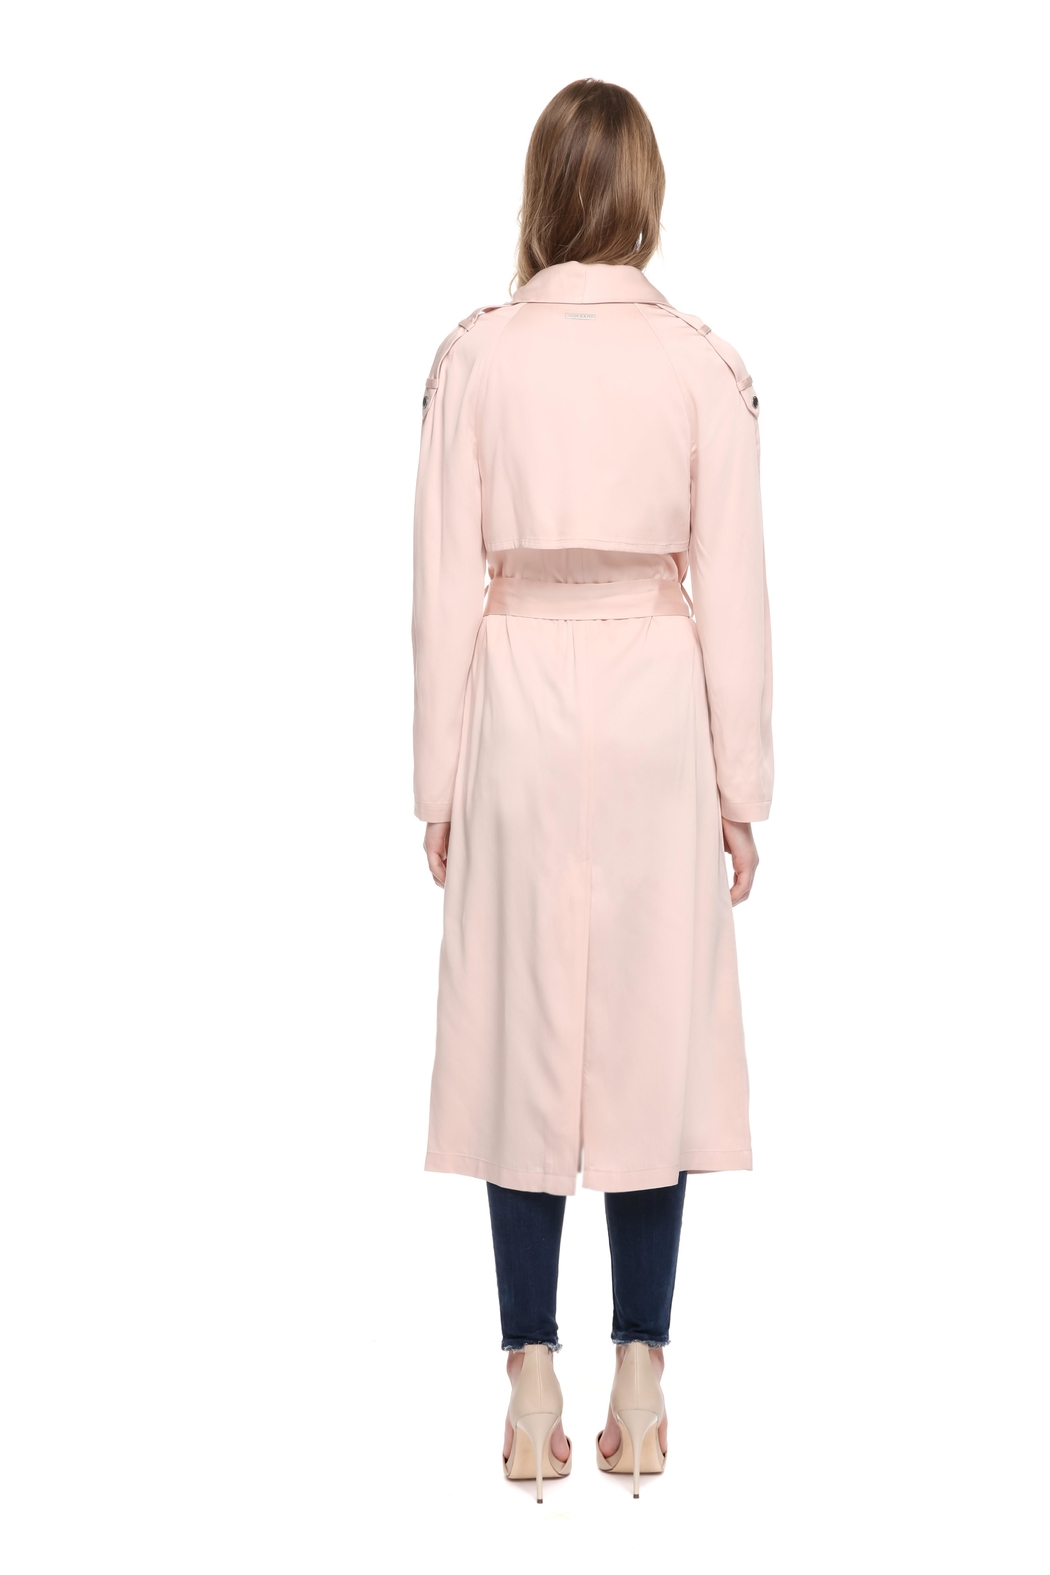 Soia & Kyo Marinella Straight-Fit Coat - Back Cropped Image